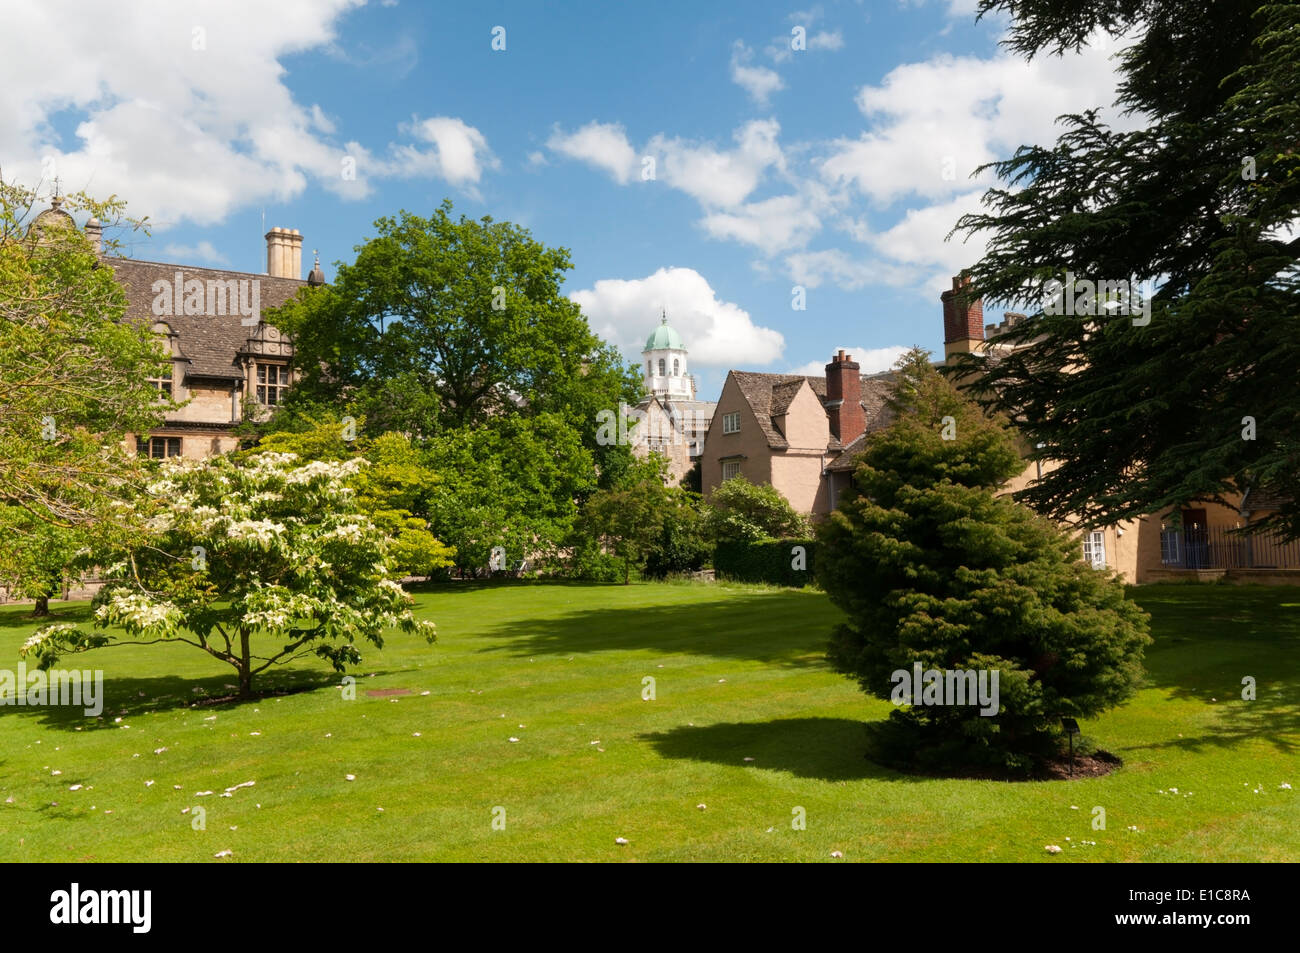 The Front Quadrangle of Trinity College in Oxford, England. - Stock Image